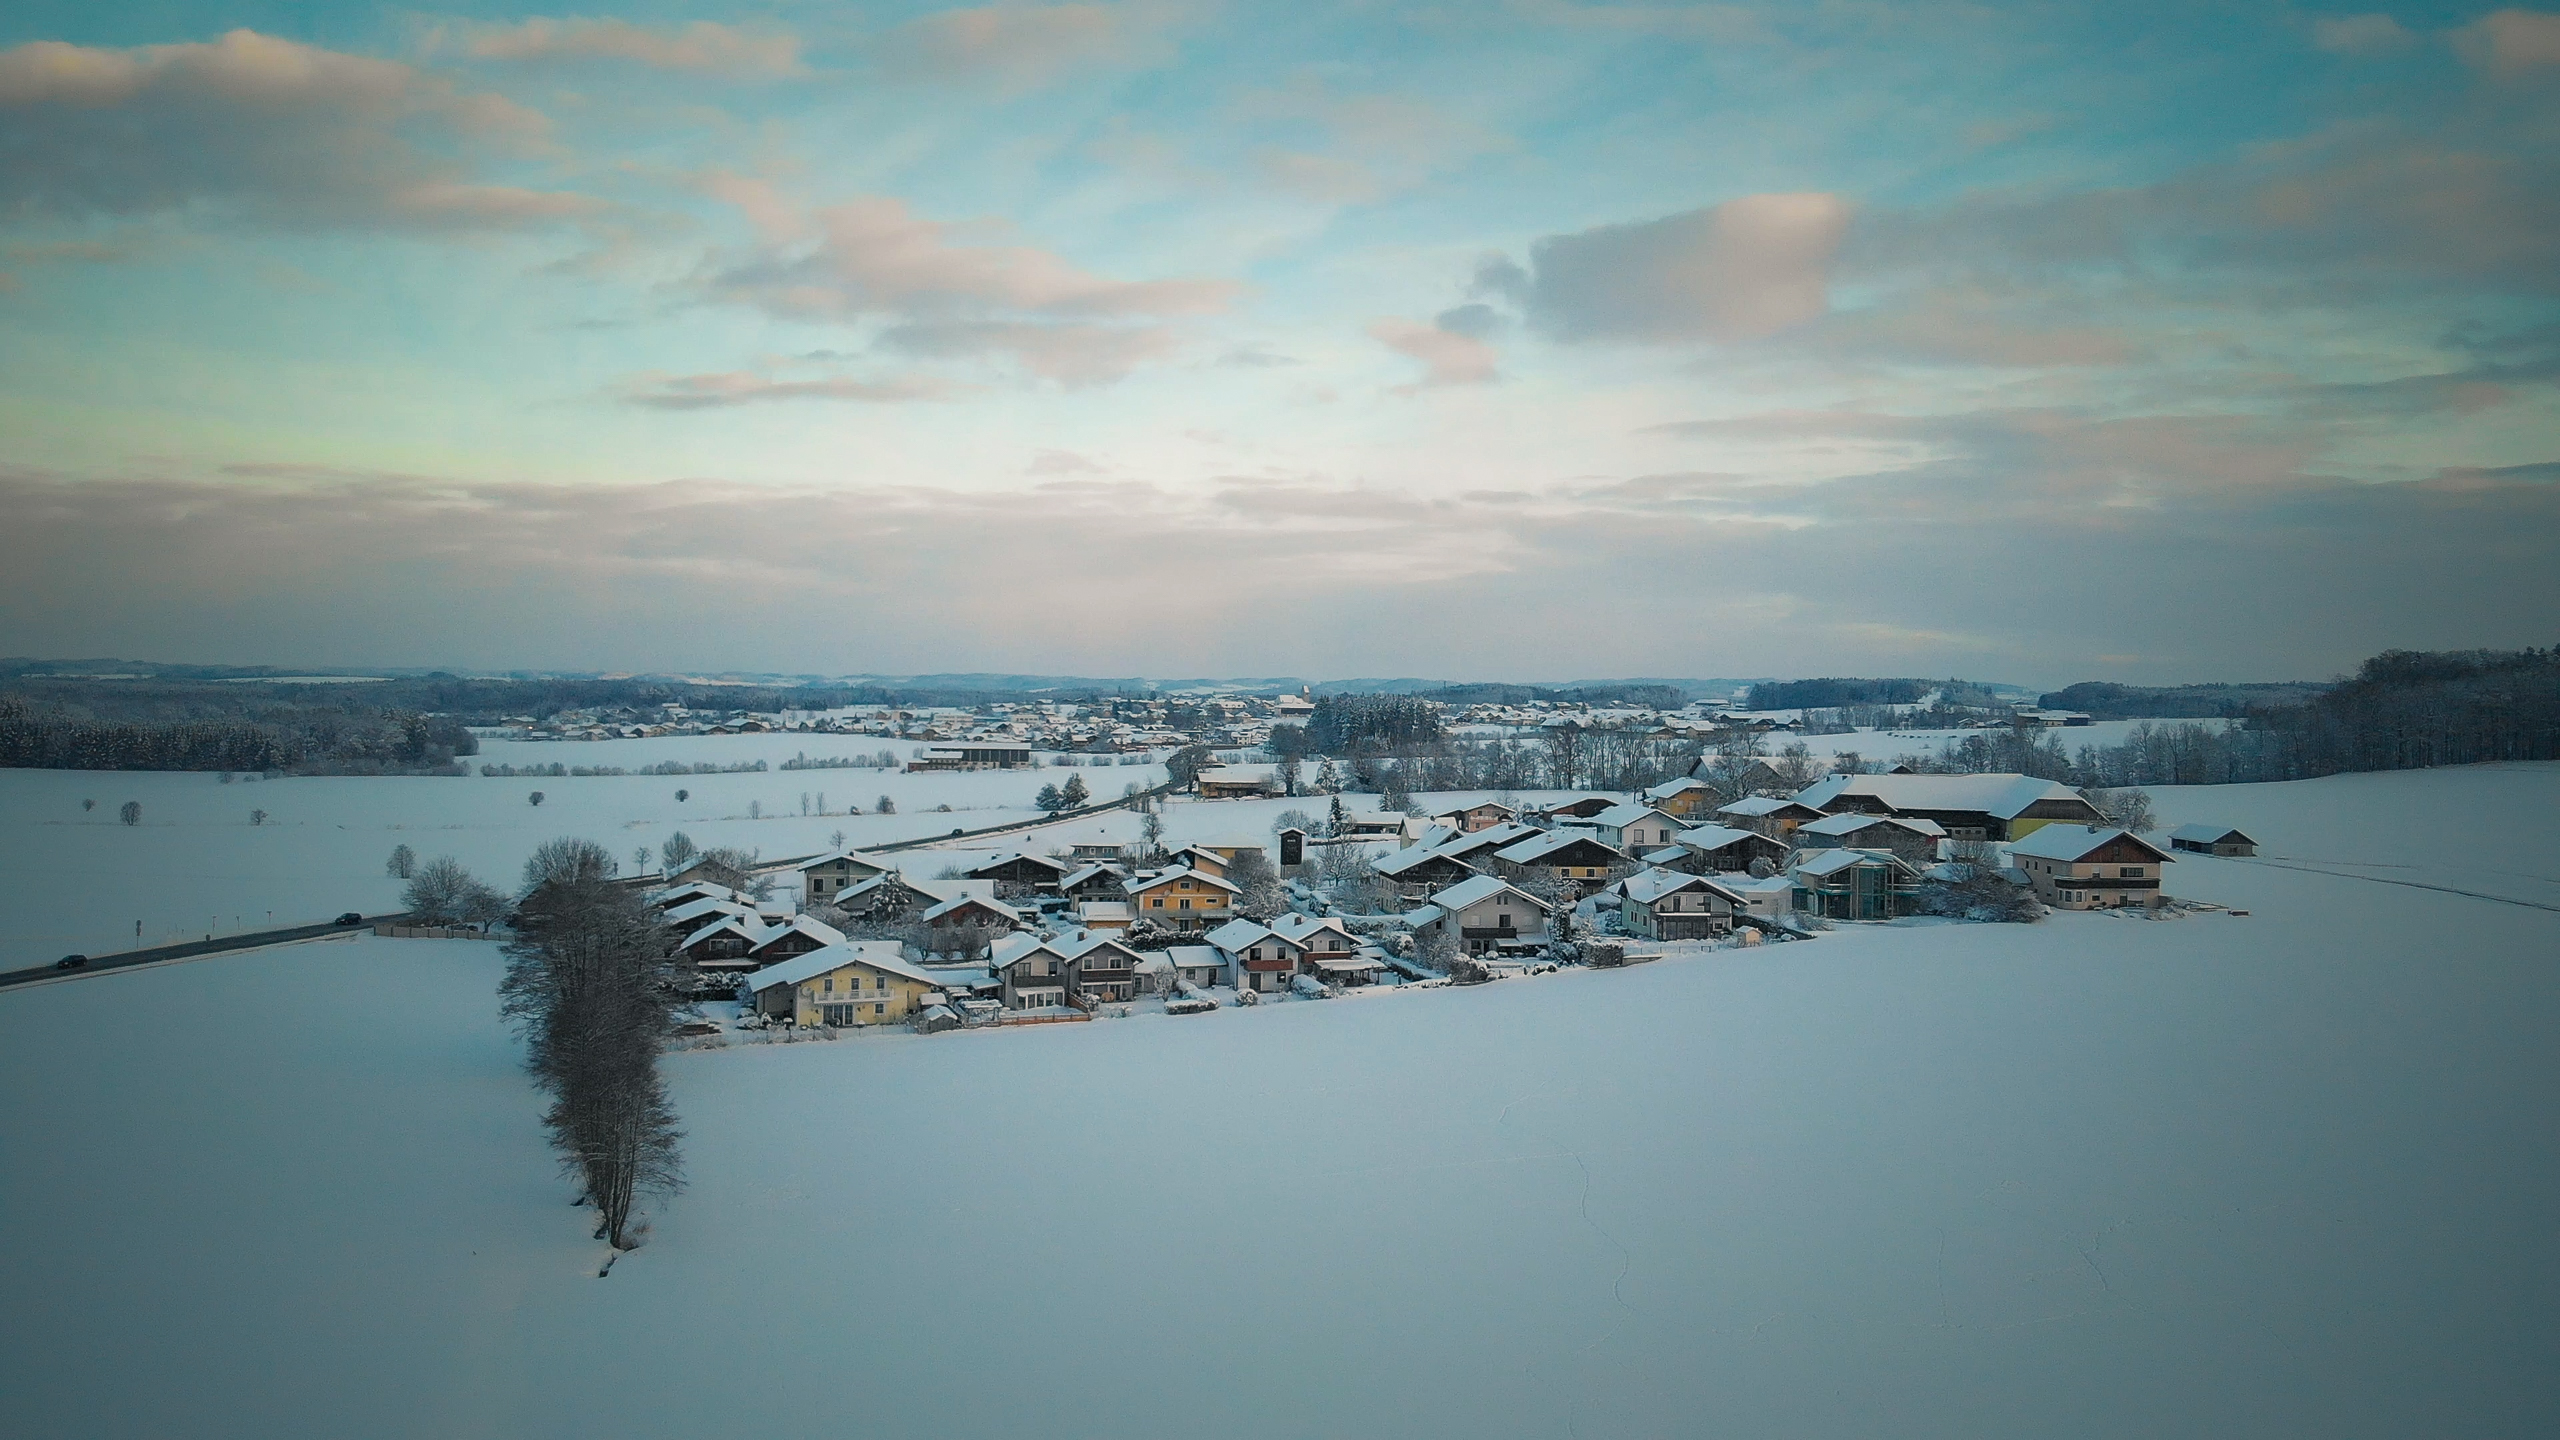 Arnsdorf_Winter2018-19_Screenshot_MichaelHerzog-09.jpg